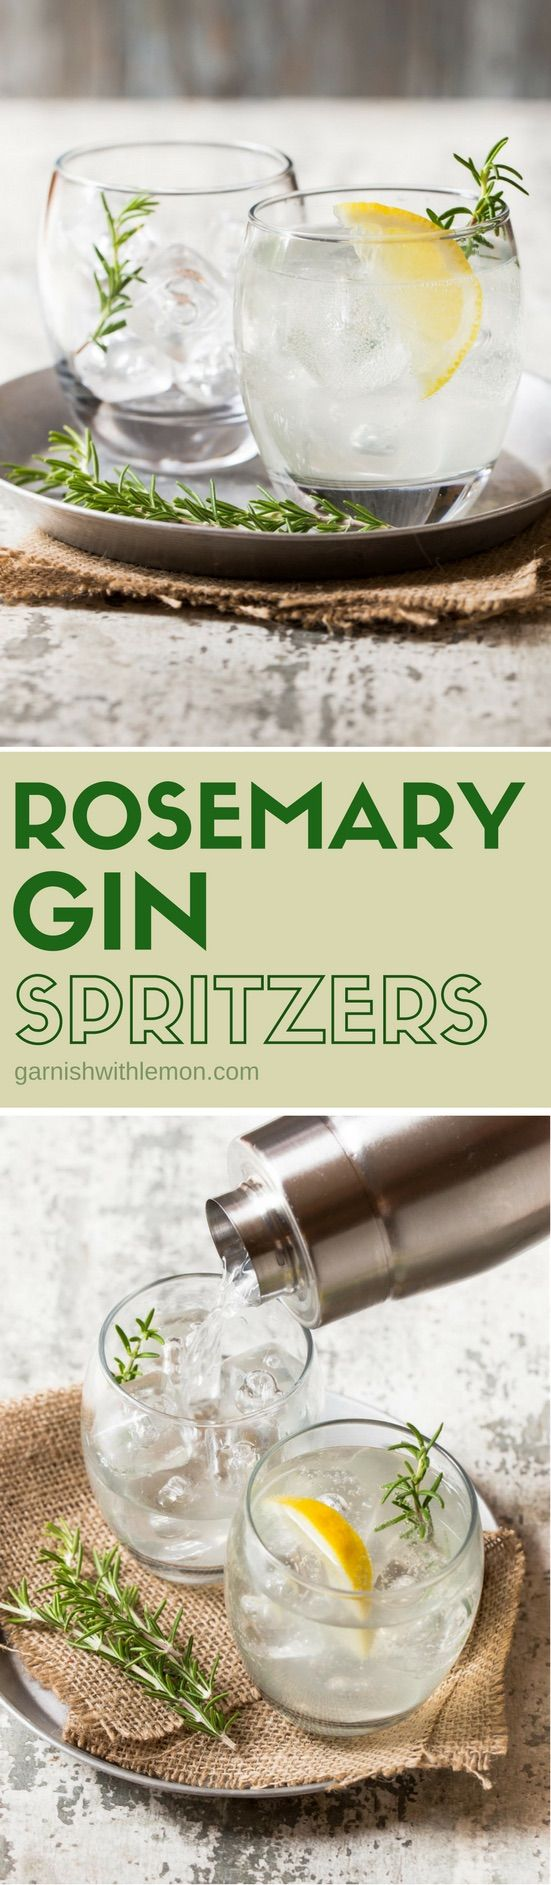 Simple and refreshing, Rosemary Gin Spritzers are the perfect way to update…